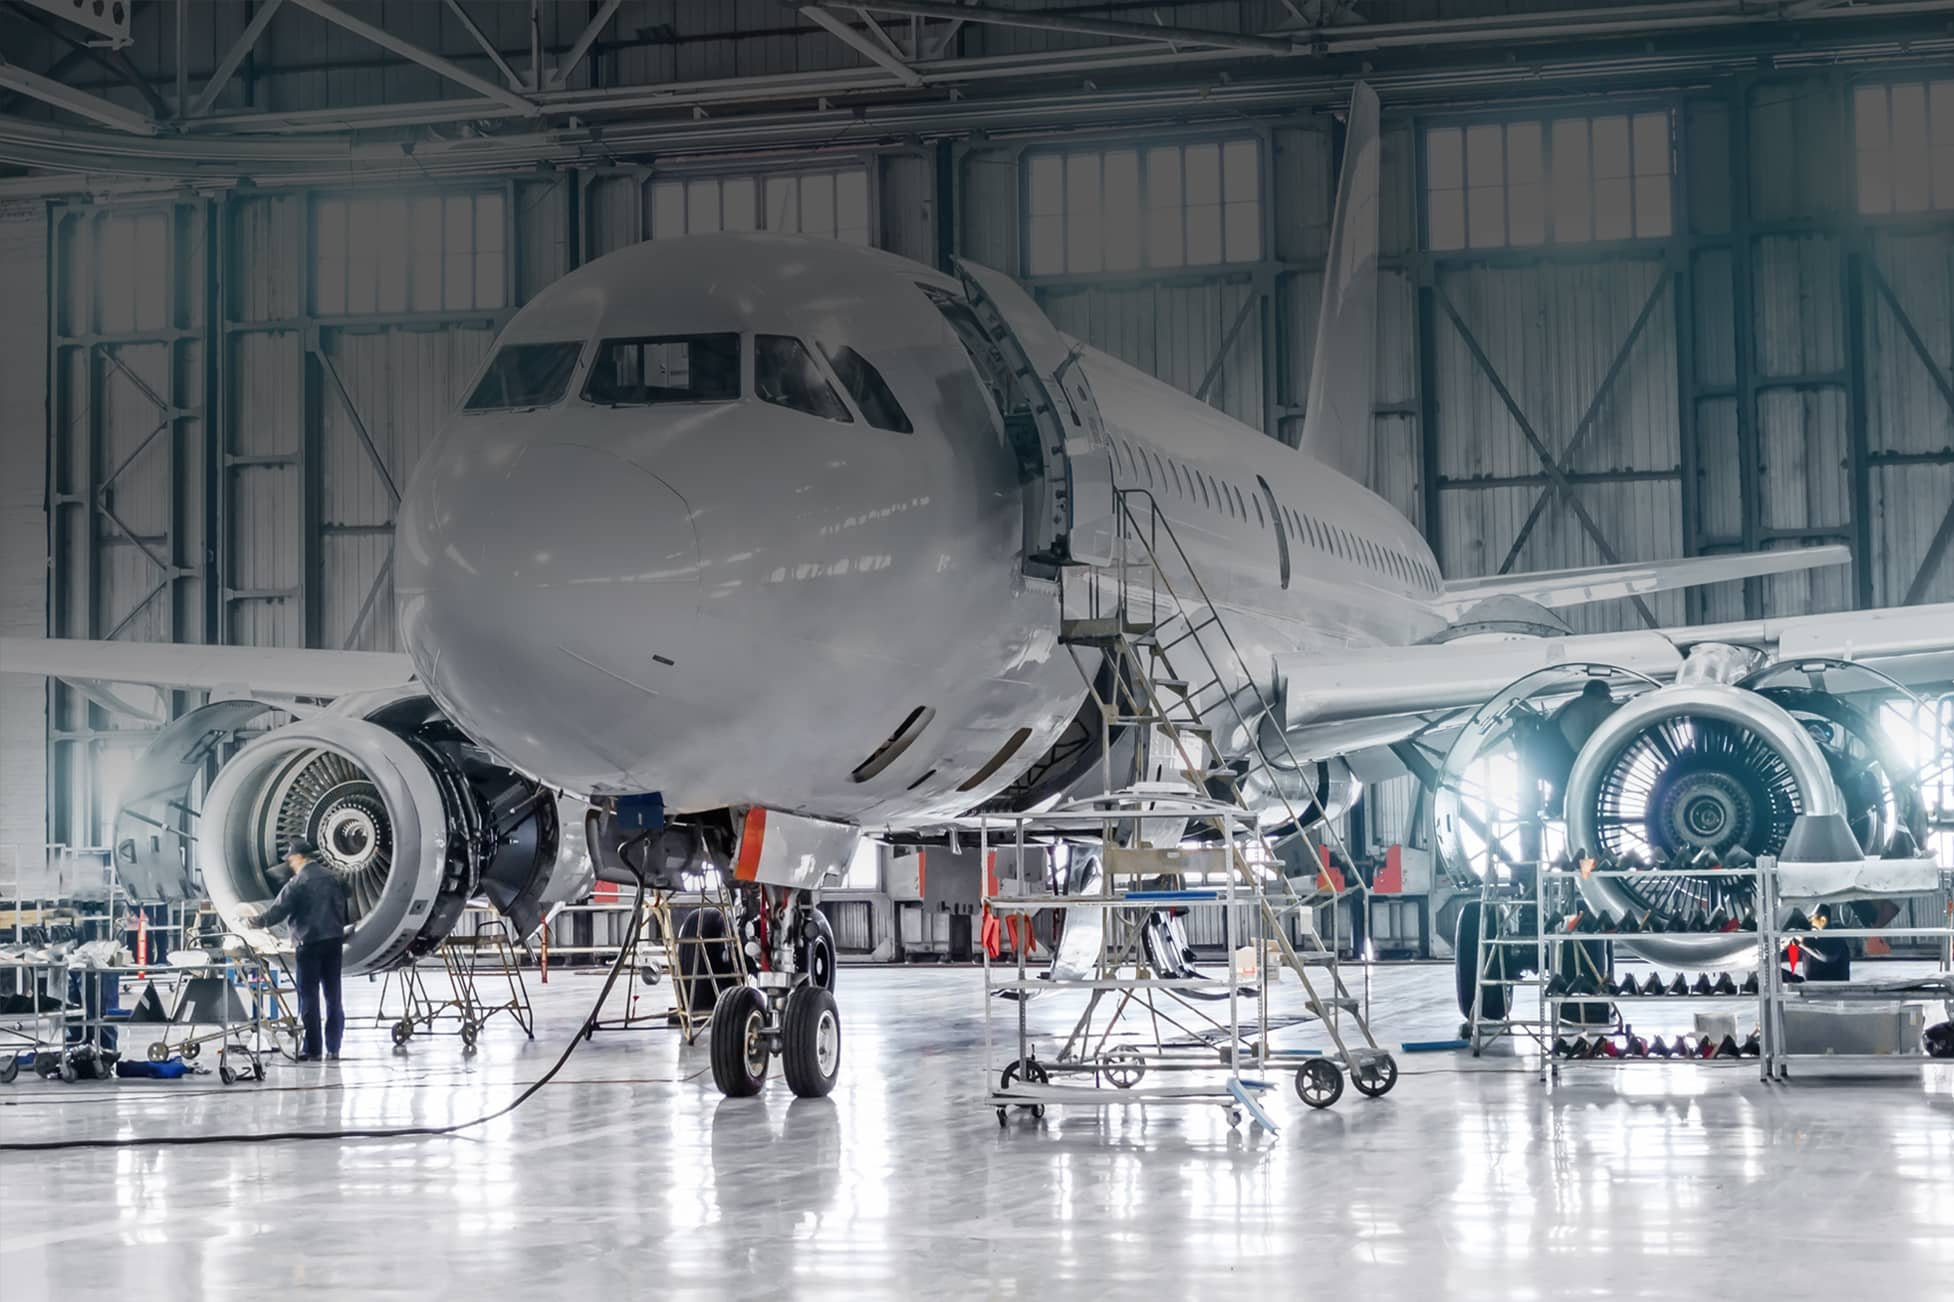 McCausey provides the highest quality specialized materials for aerospace model making